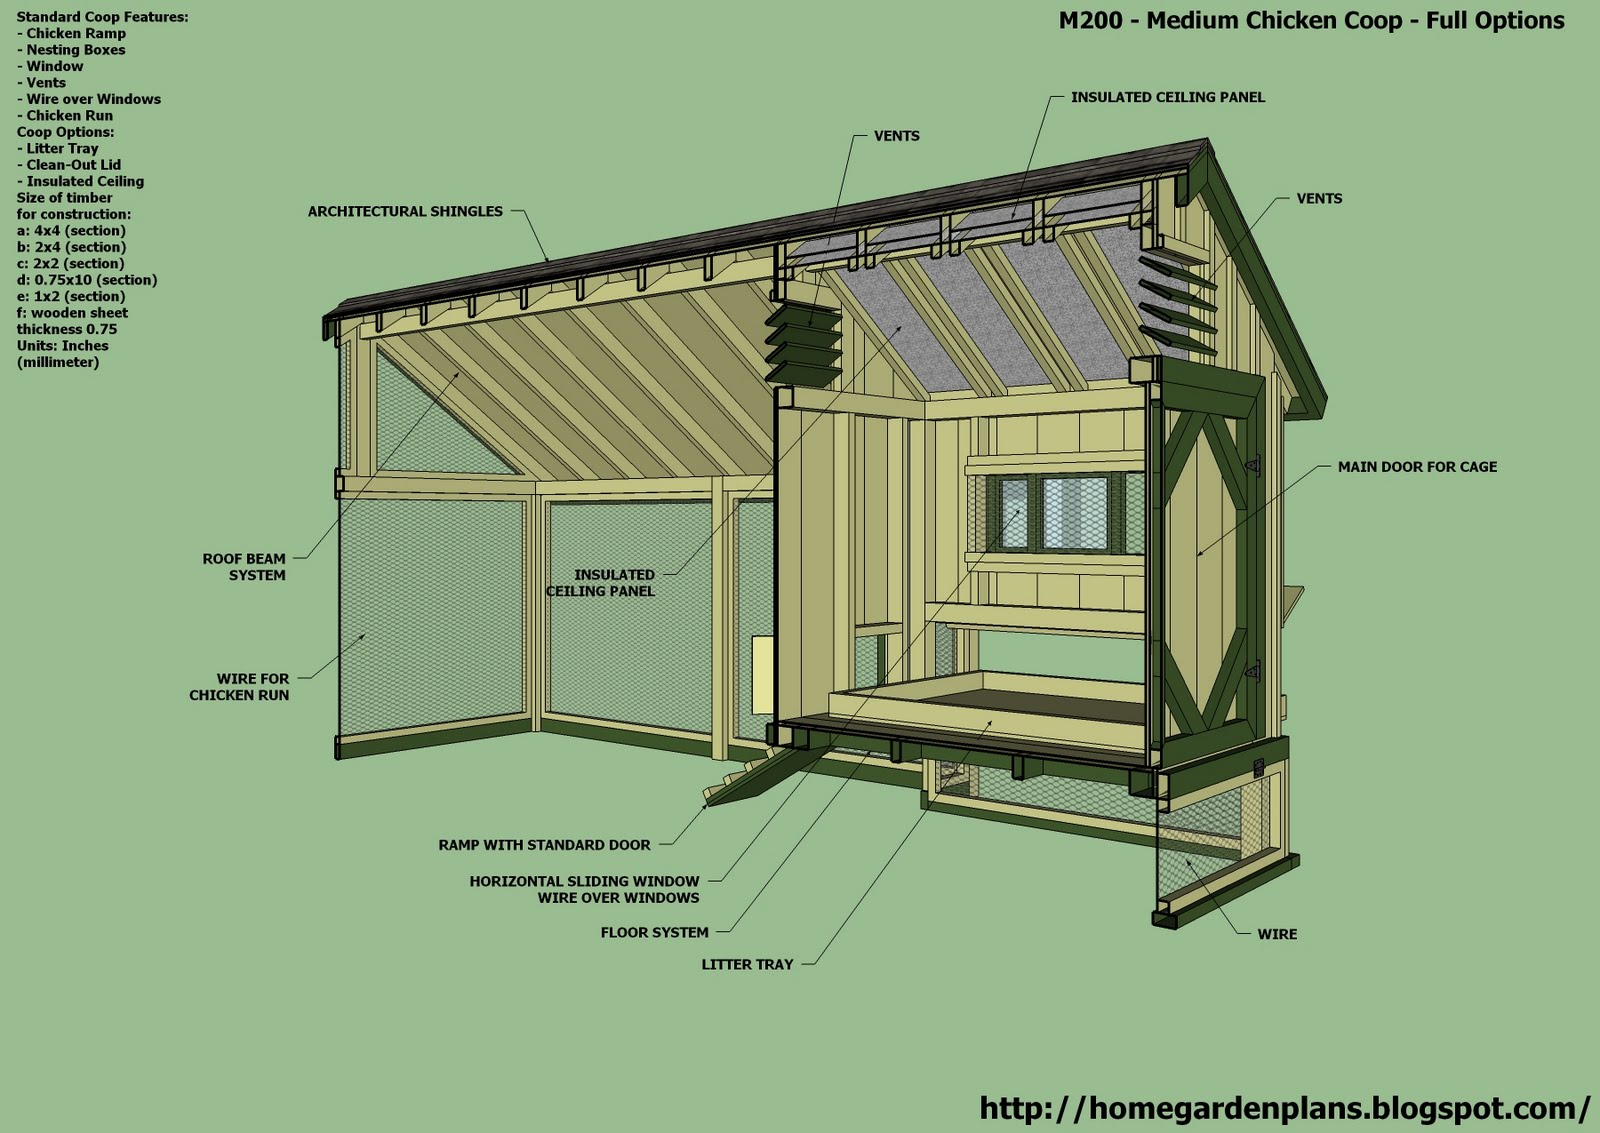 Shed Plans – Why a Plan is Important For Building a Chicken Coop